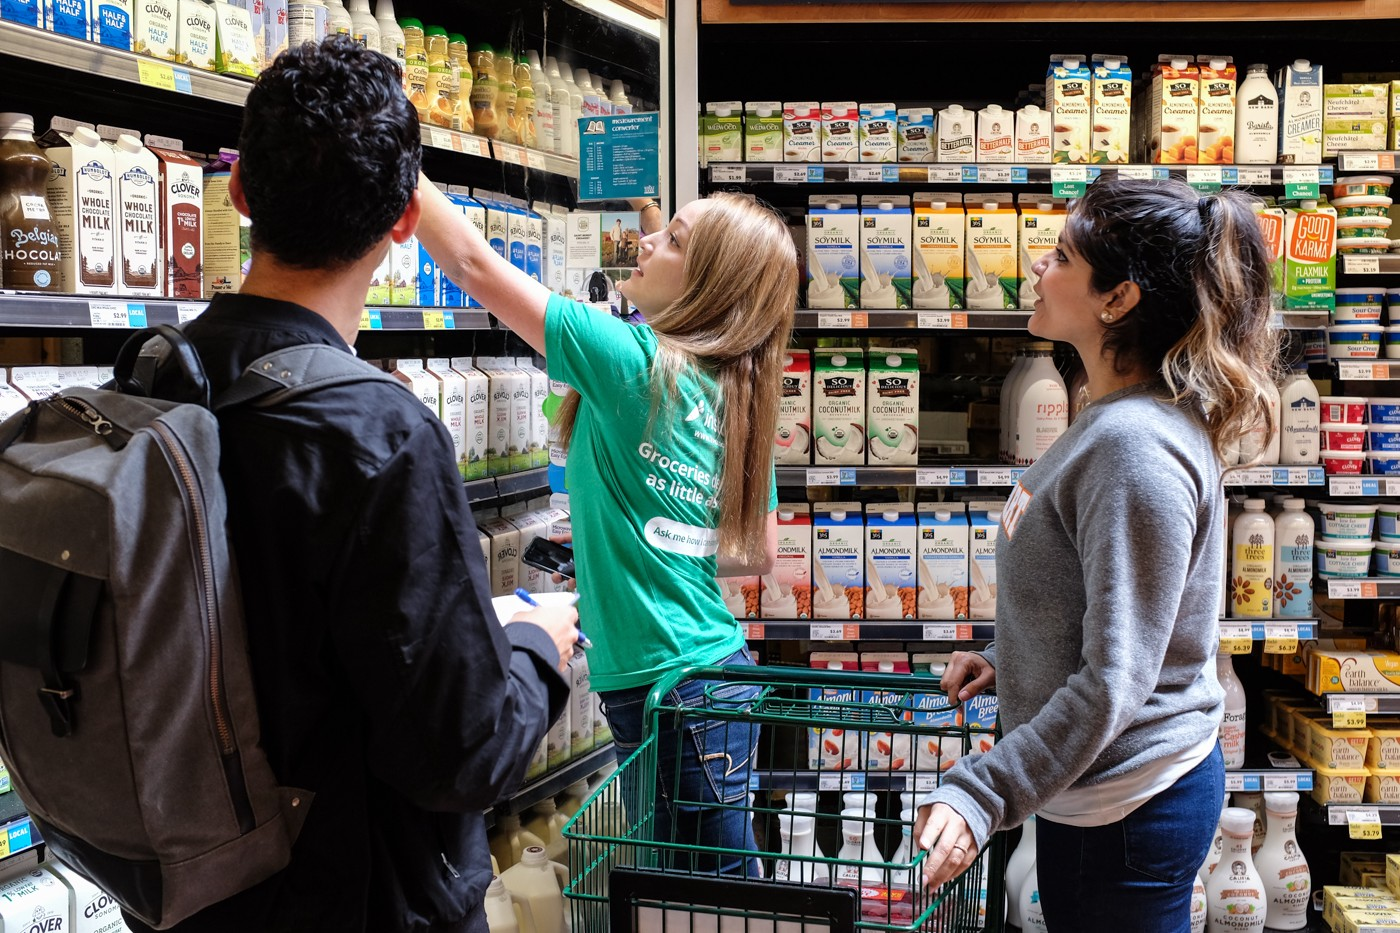 How Instacart onboards thousands of shoppers every week